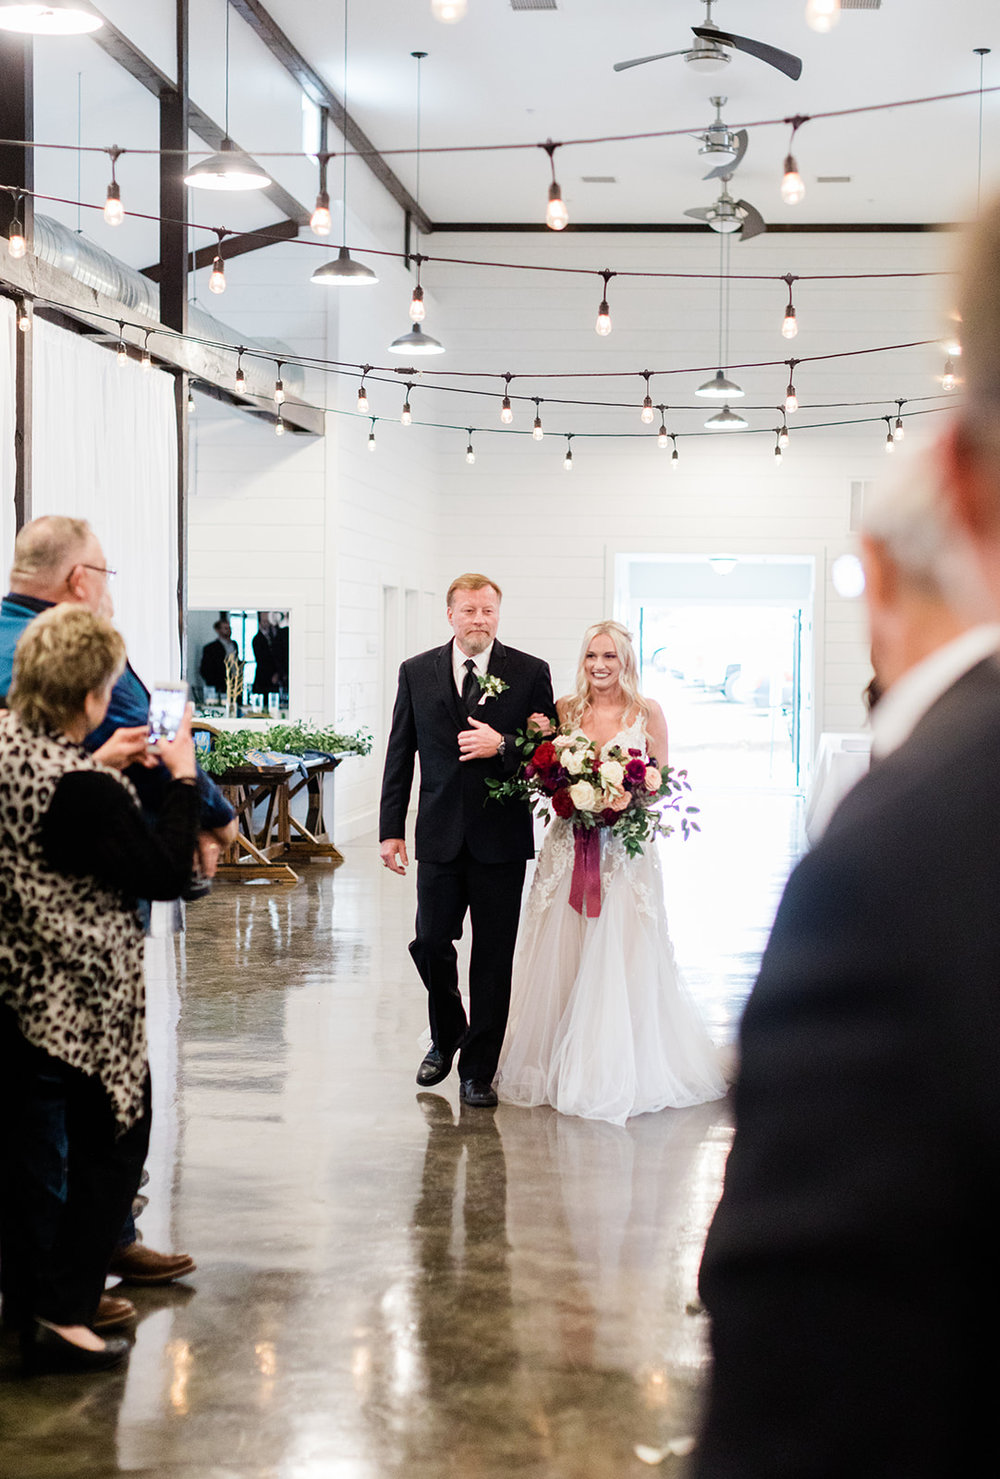 Bixby Tulsa Wedding Venues 32b.jpg